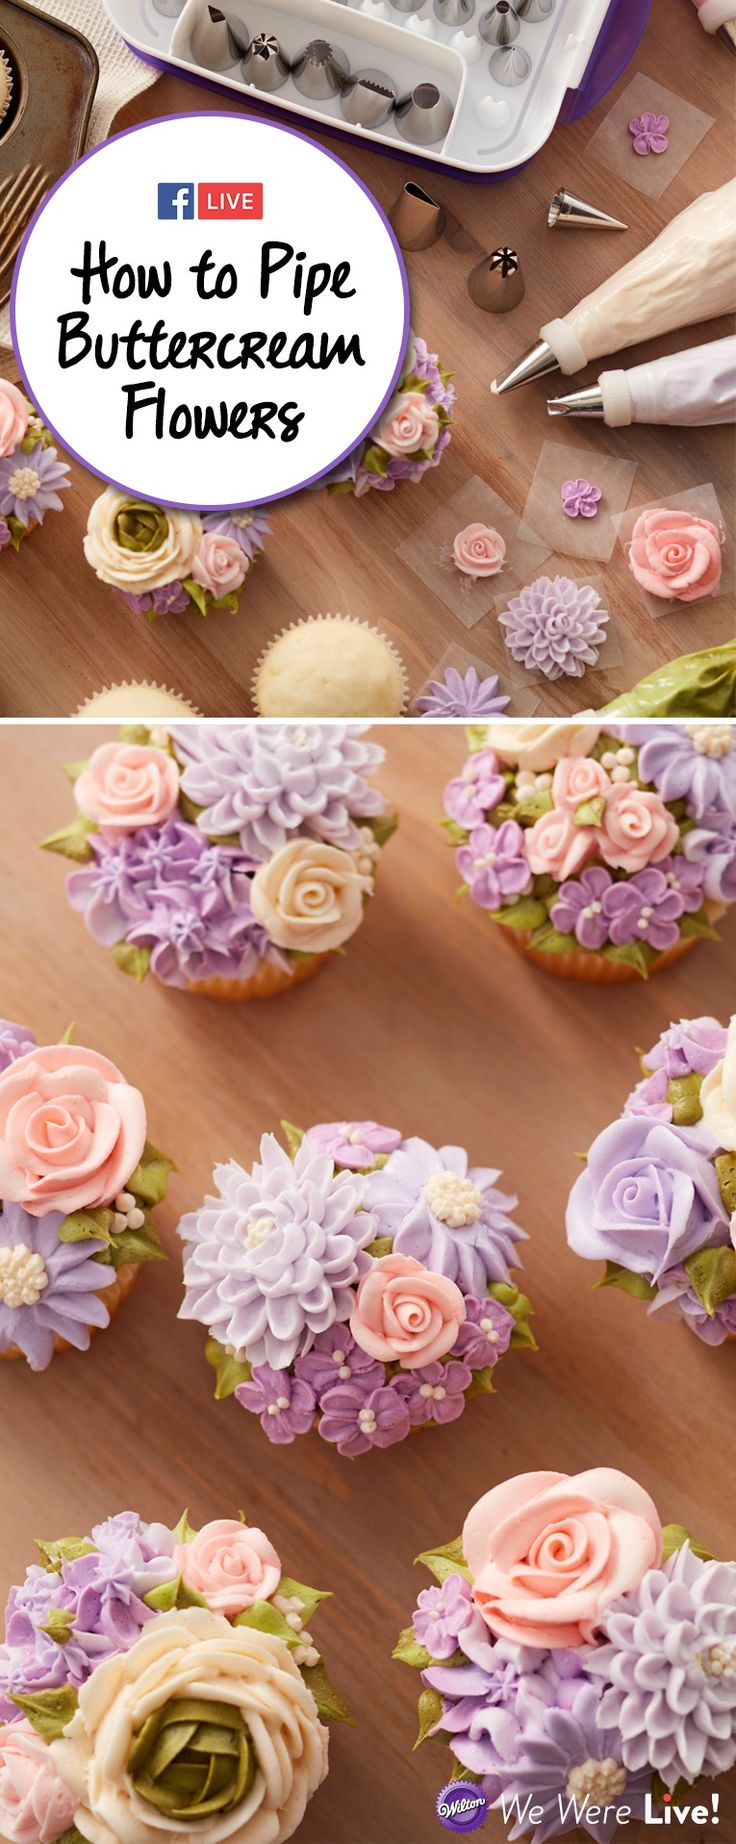 TUTORIAL - Learn how to pipe buttercream flowers to make beautiful cupcakes! This Facebook Live episode by Wilton Cake Decorating will show you how to make buttercream flowers like Chrysanthemum, Ranu (How To Make Good)